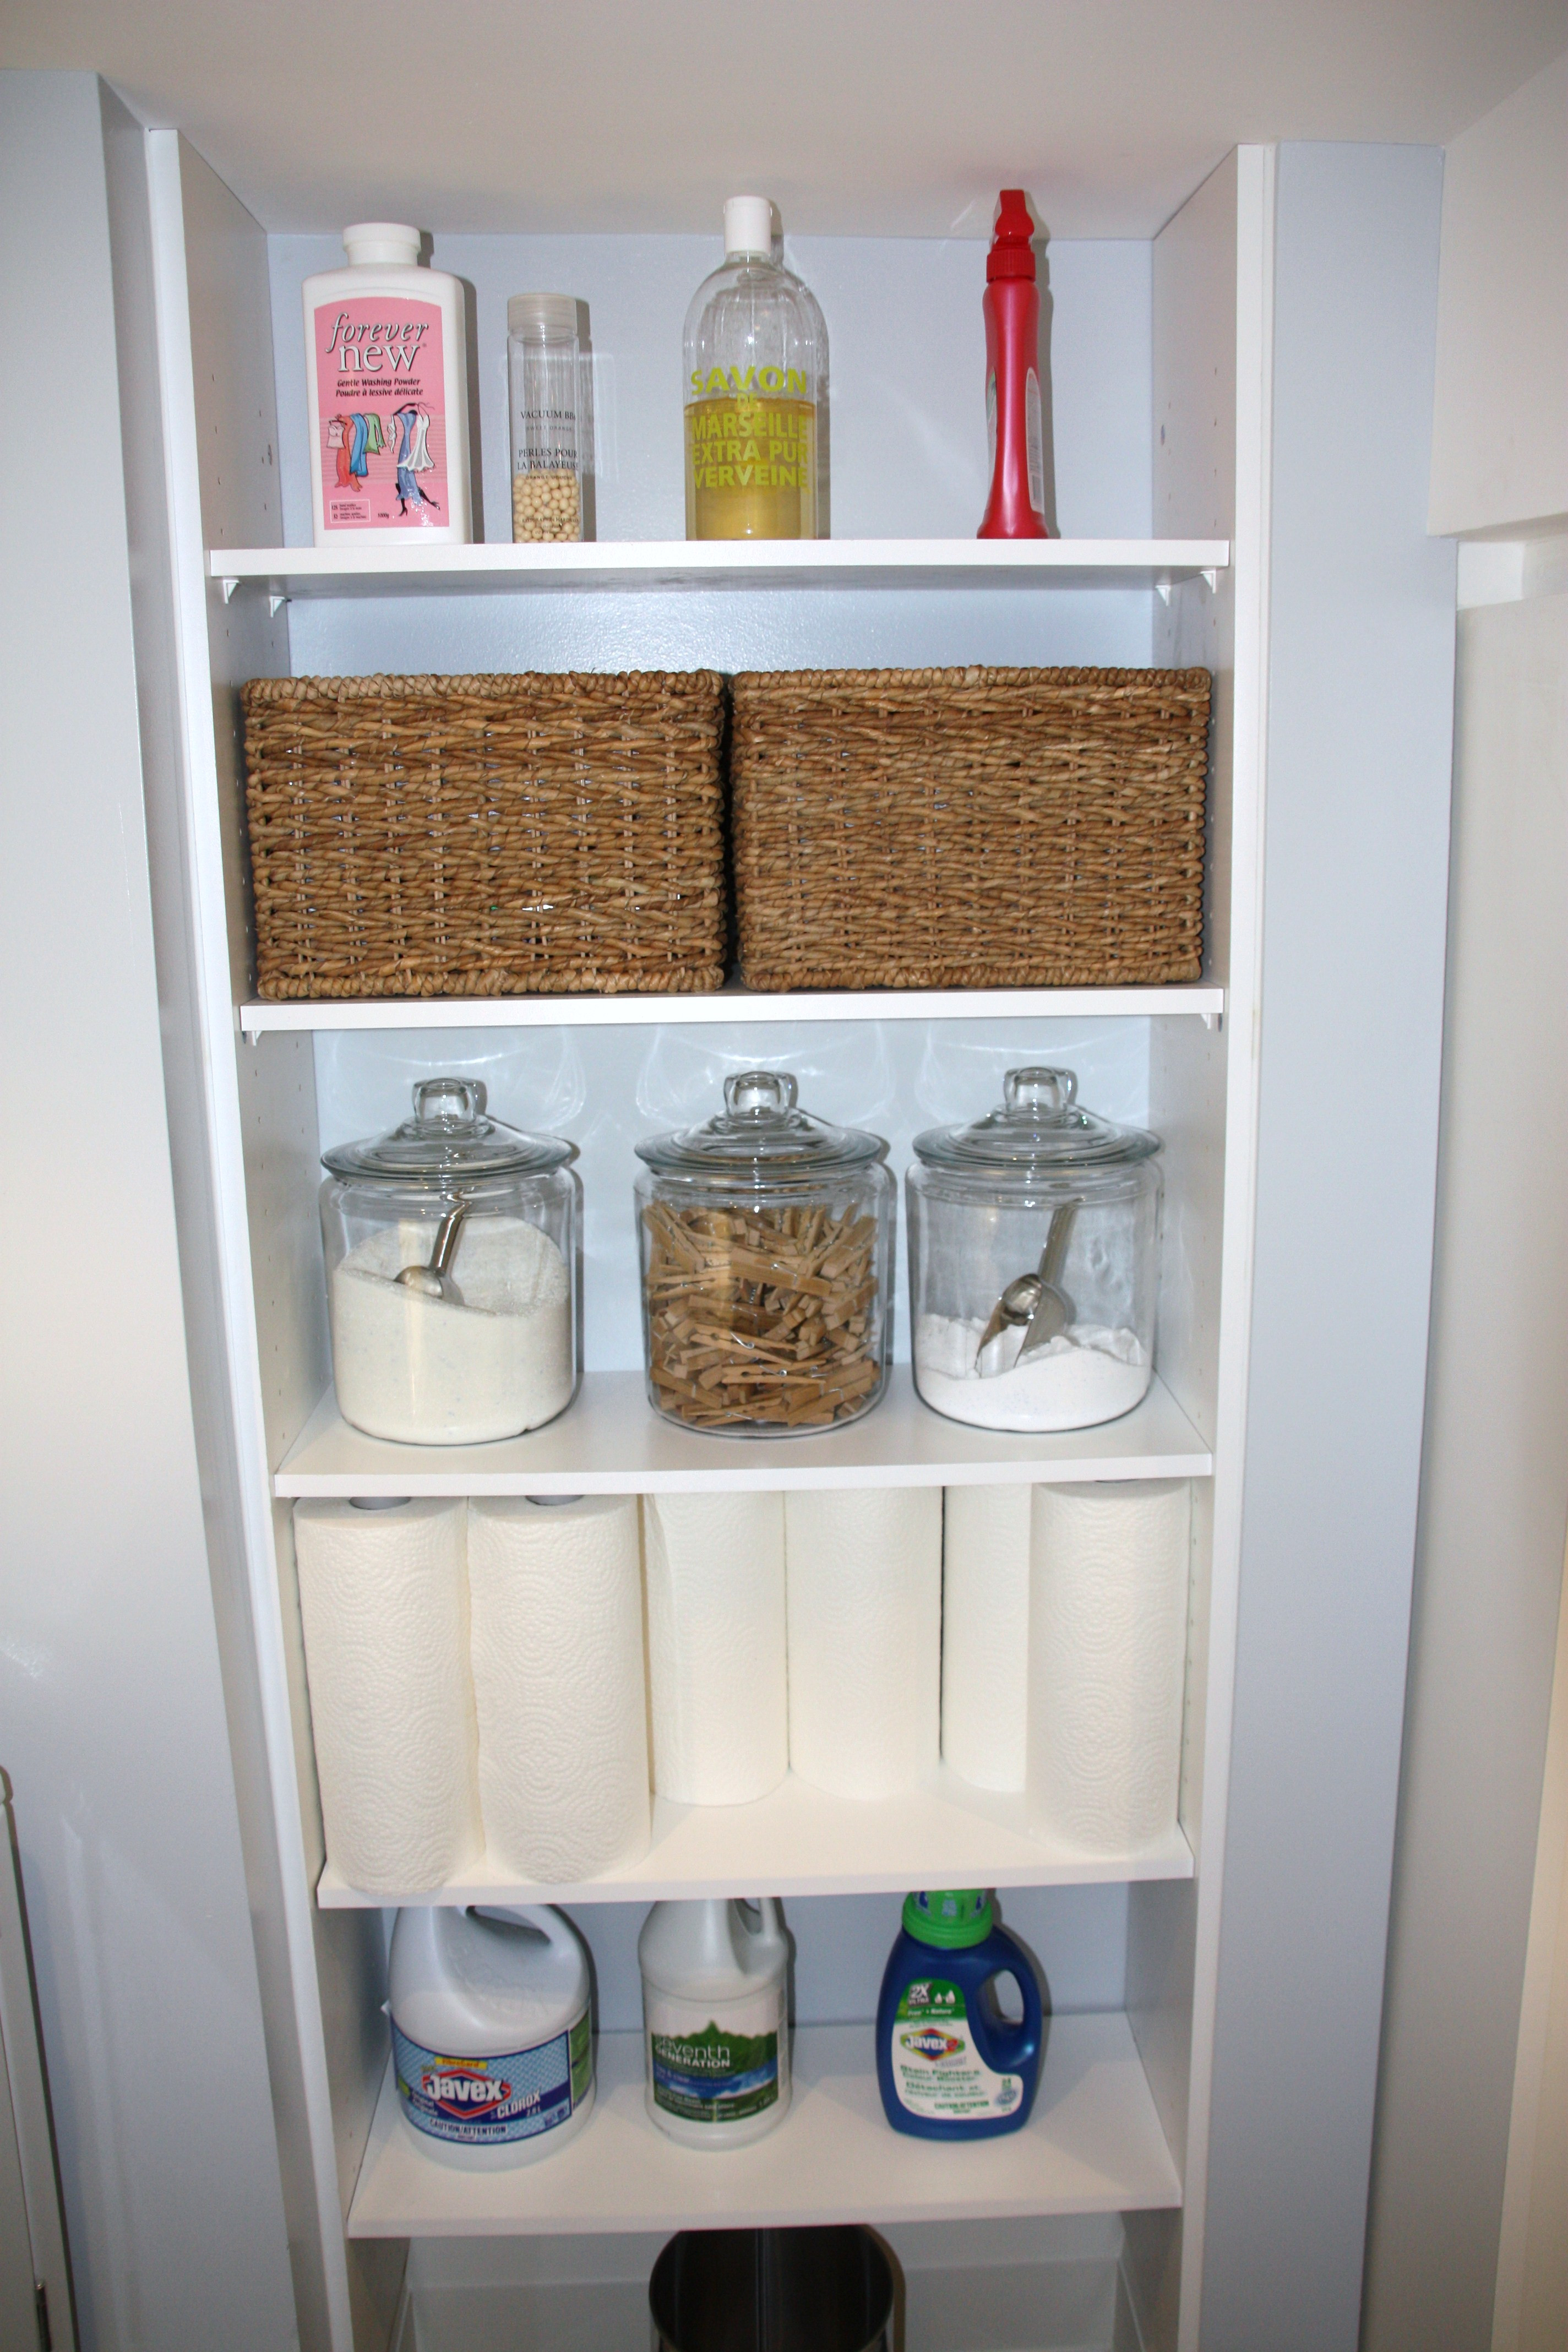 Best ideas about Laundry Room Storage Ideas . Save or Pin Organizing the Laundry Room Now.